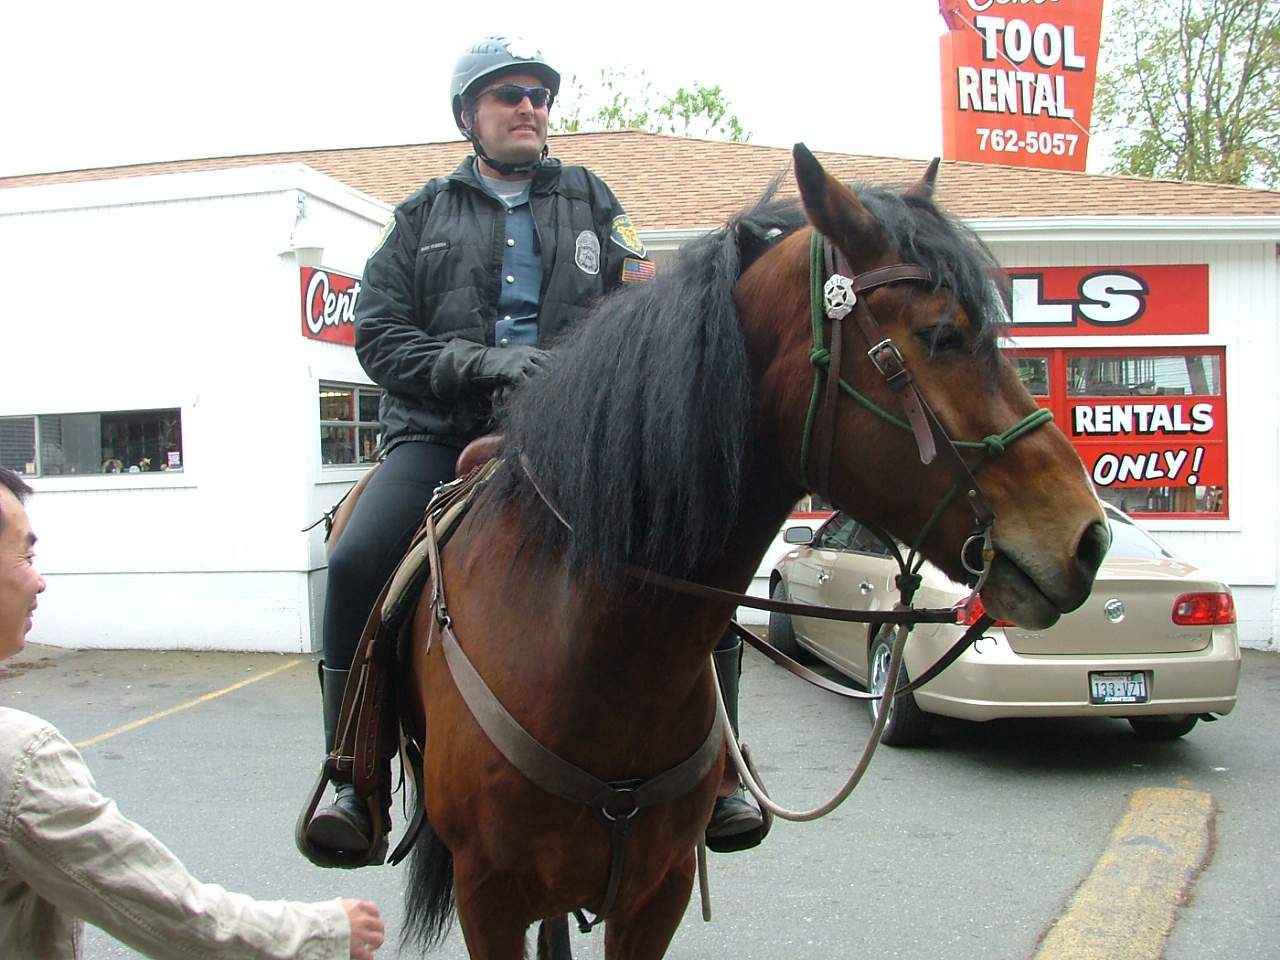 SPD horse on patrol in front of Cafe Rozella